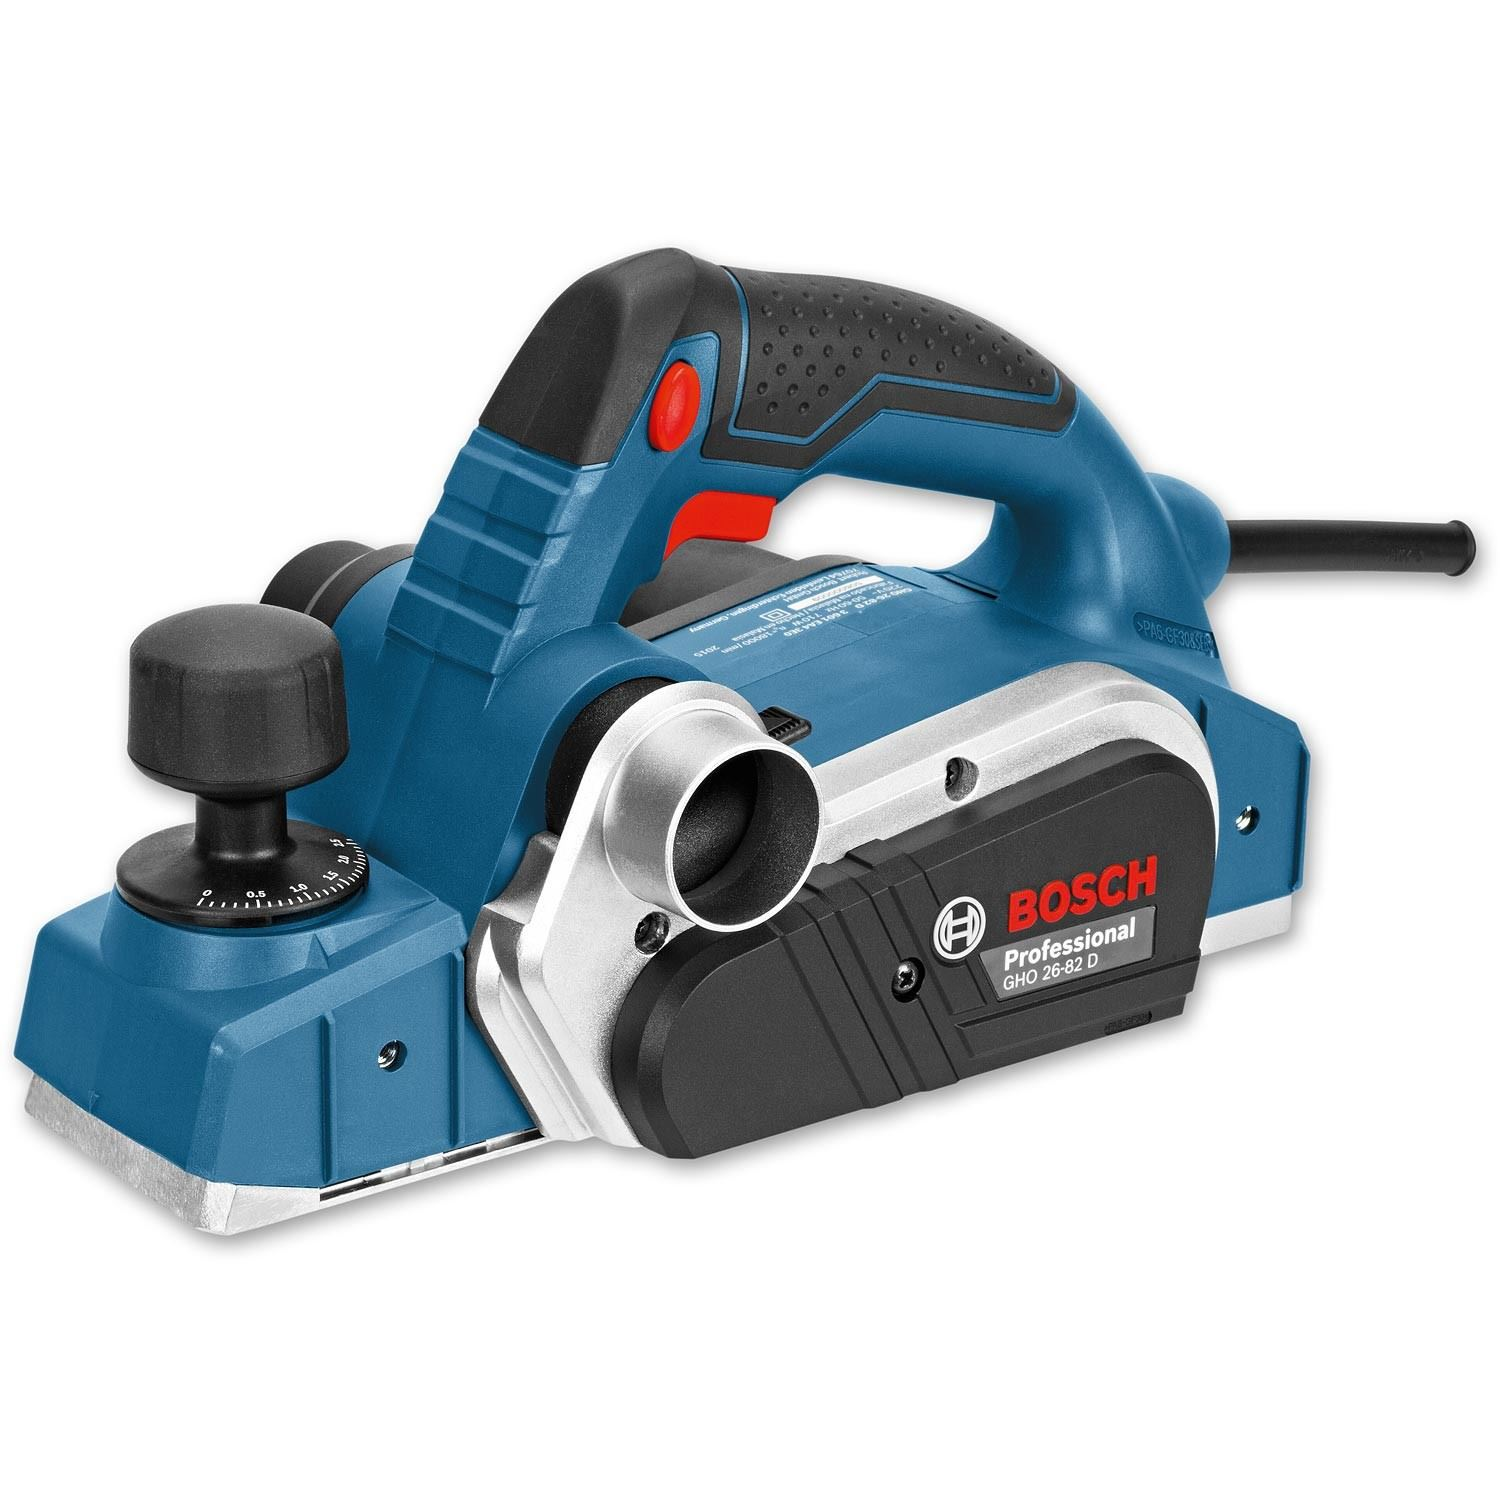 BOSCH GHO 26-82 D Professional Planer 650W 230V 06015A4370   The Bosch GHO 26-82 D is a small, handy machine with powerful 710W motor for all on-site fitting work.   toolforce.ie